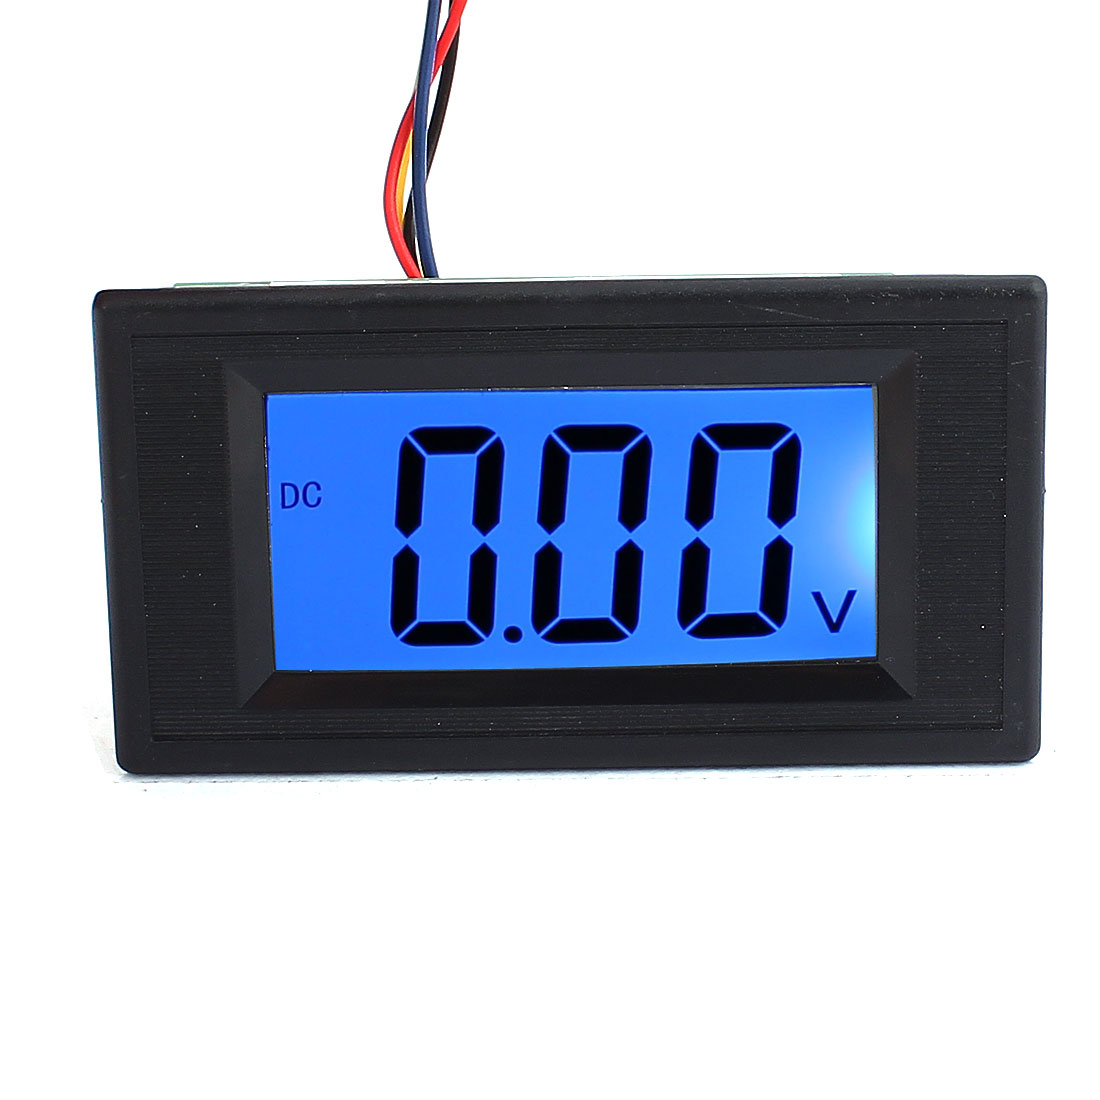 AC/DC 8-12V Blue LED Panel Mount 20V Voltage Meter 4 Digital Display Voltmeter